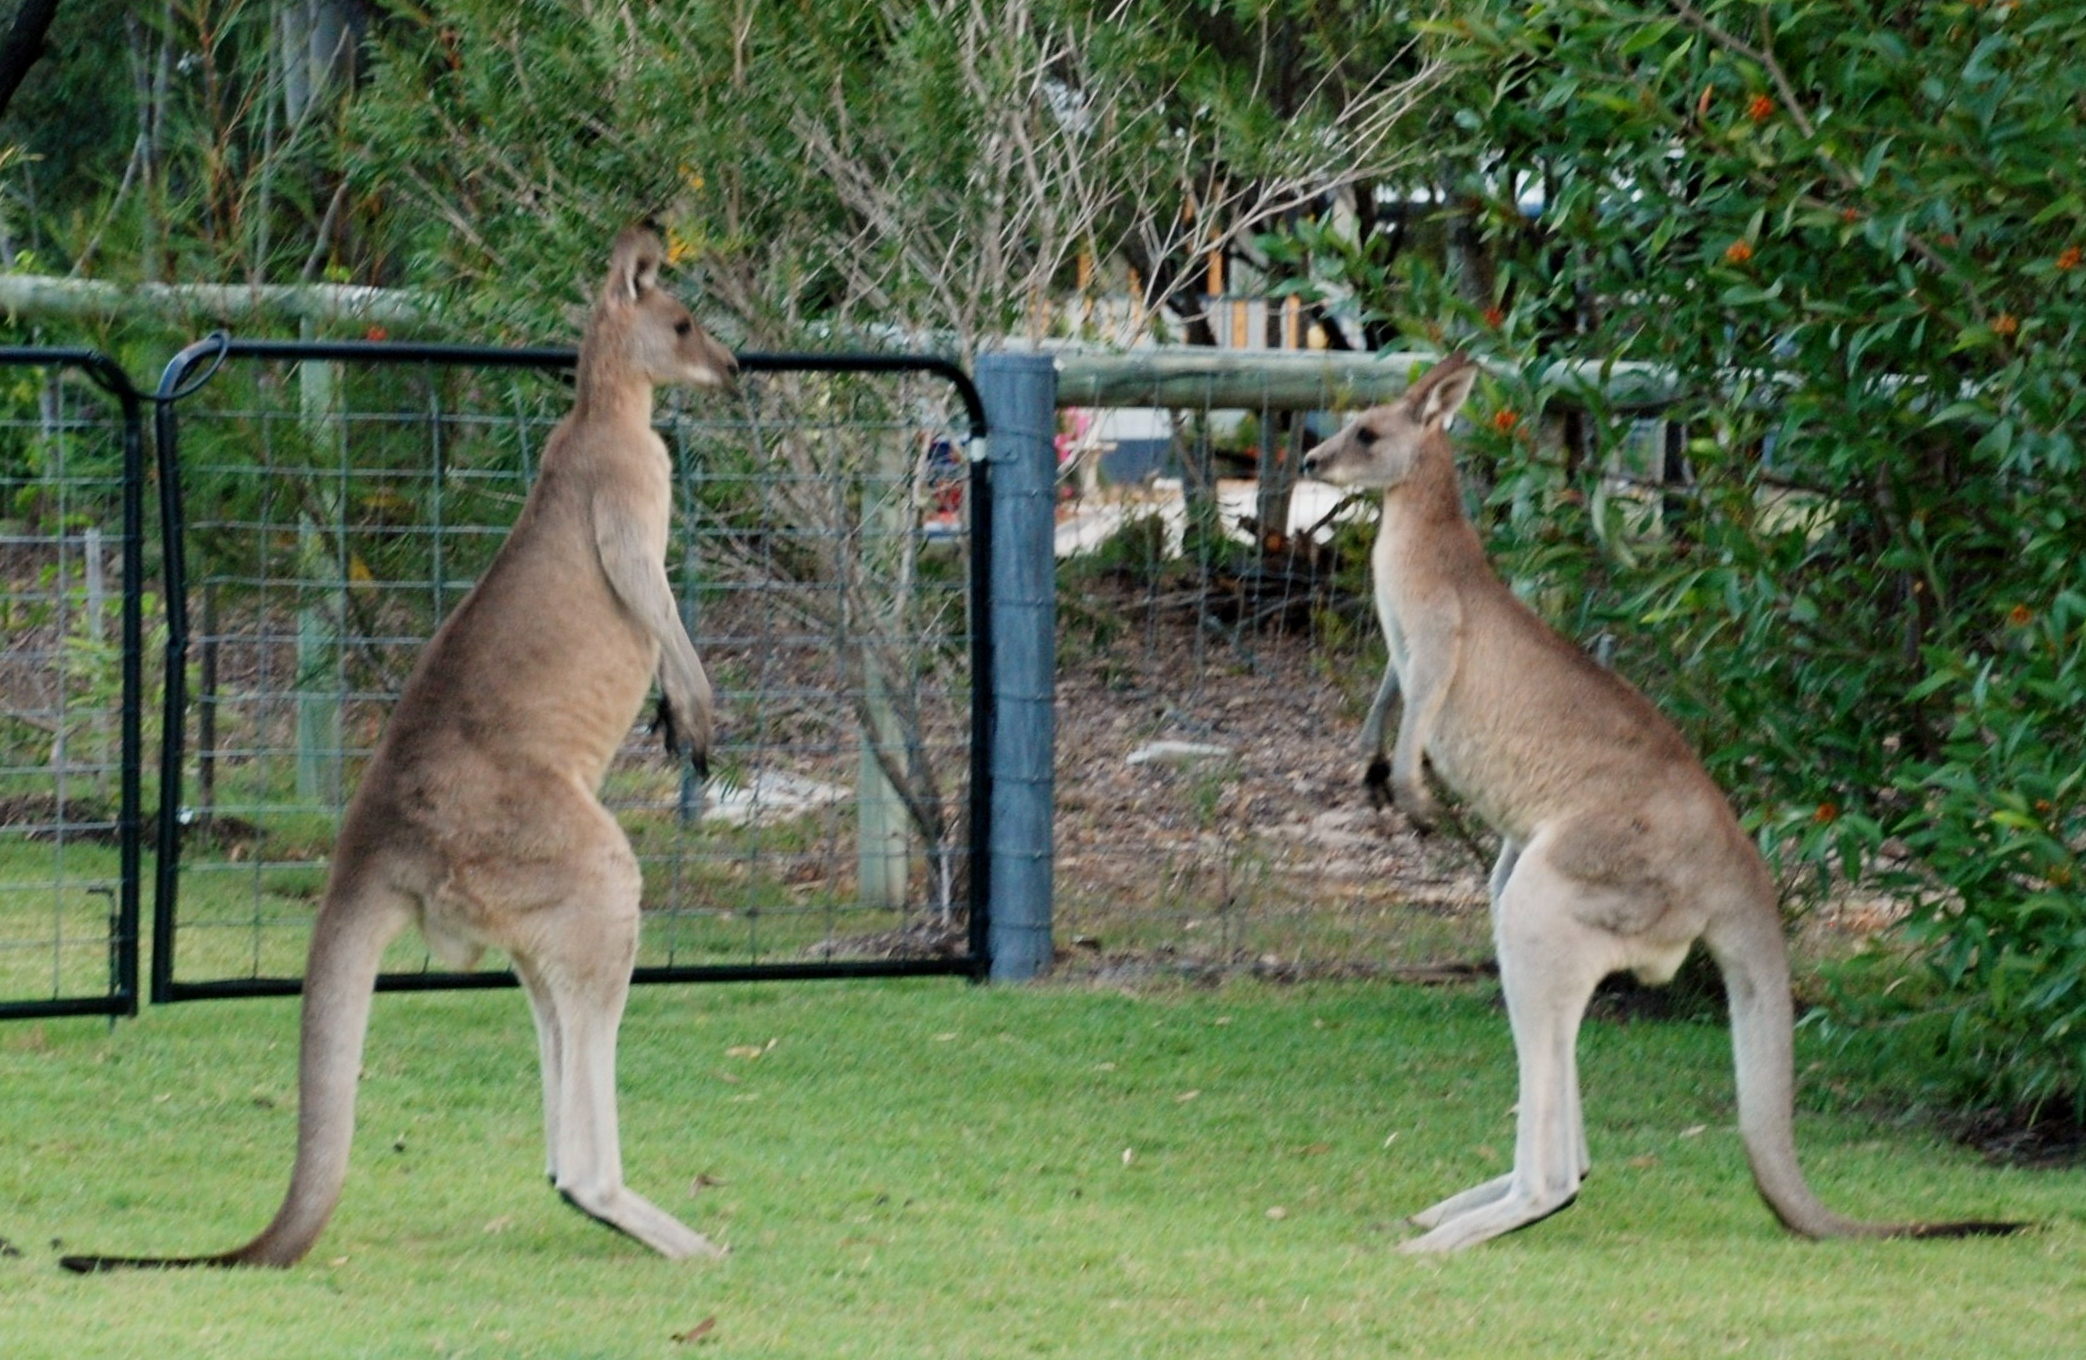 Y So Kangaroo Song Kangaroo Fighting Huma...